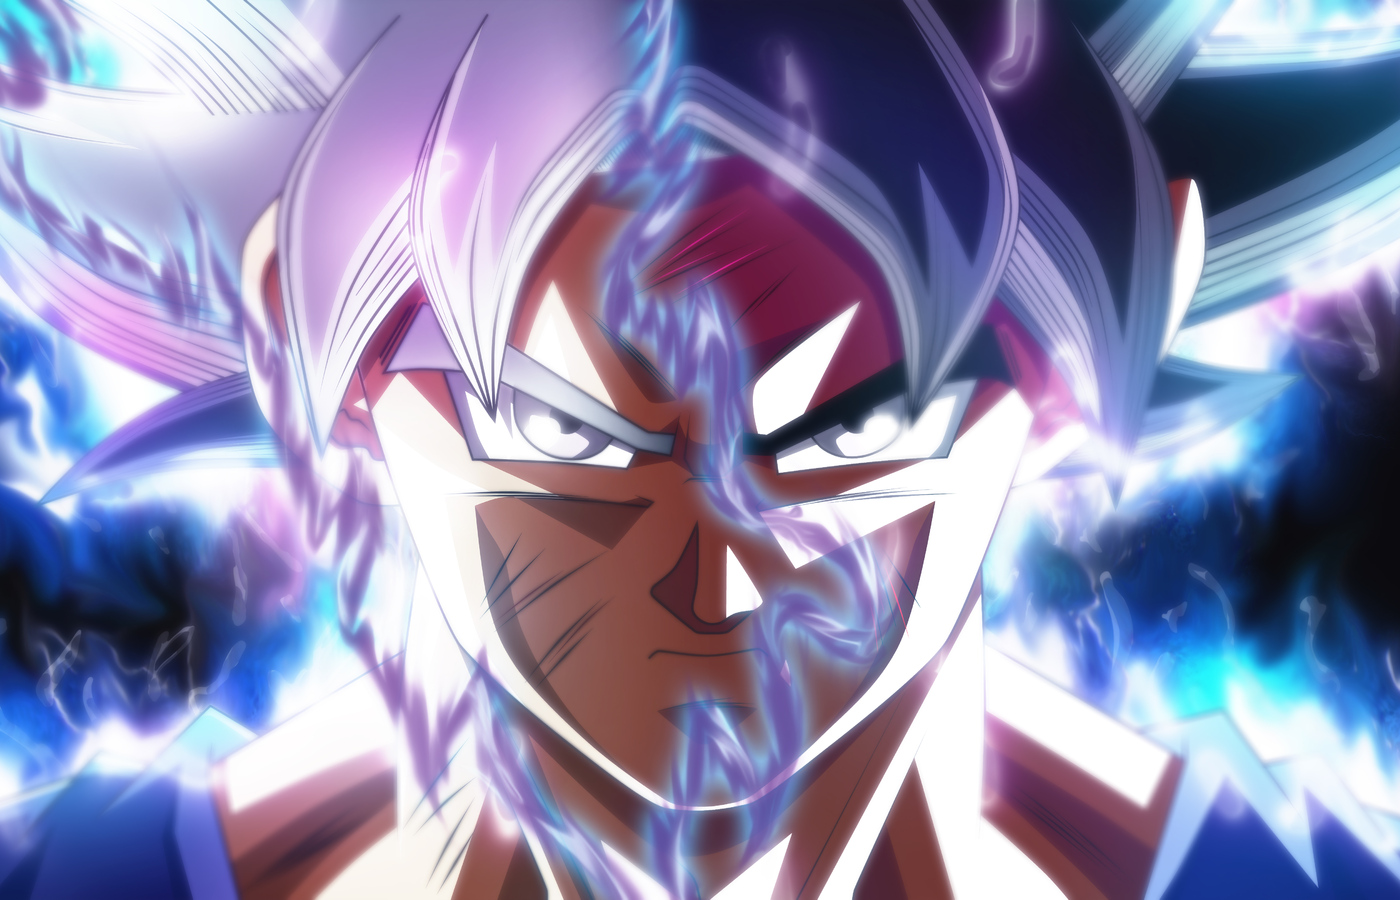 goku-ultra-instinct-transformation-5k-an.jpg